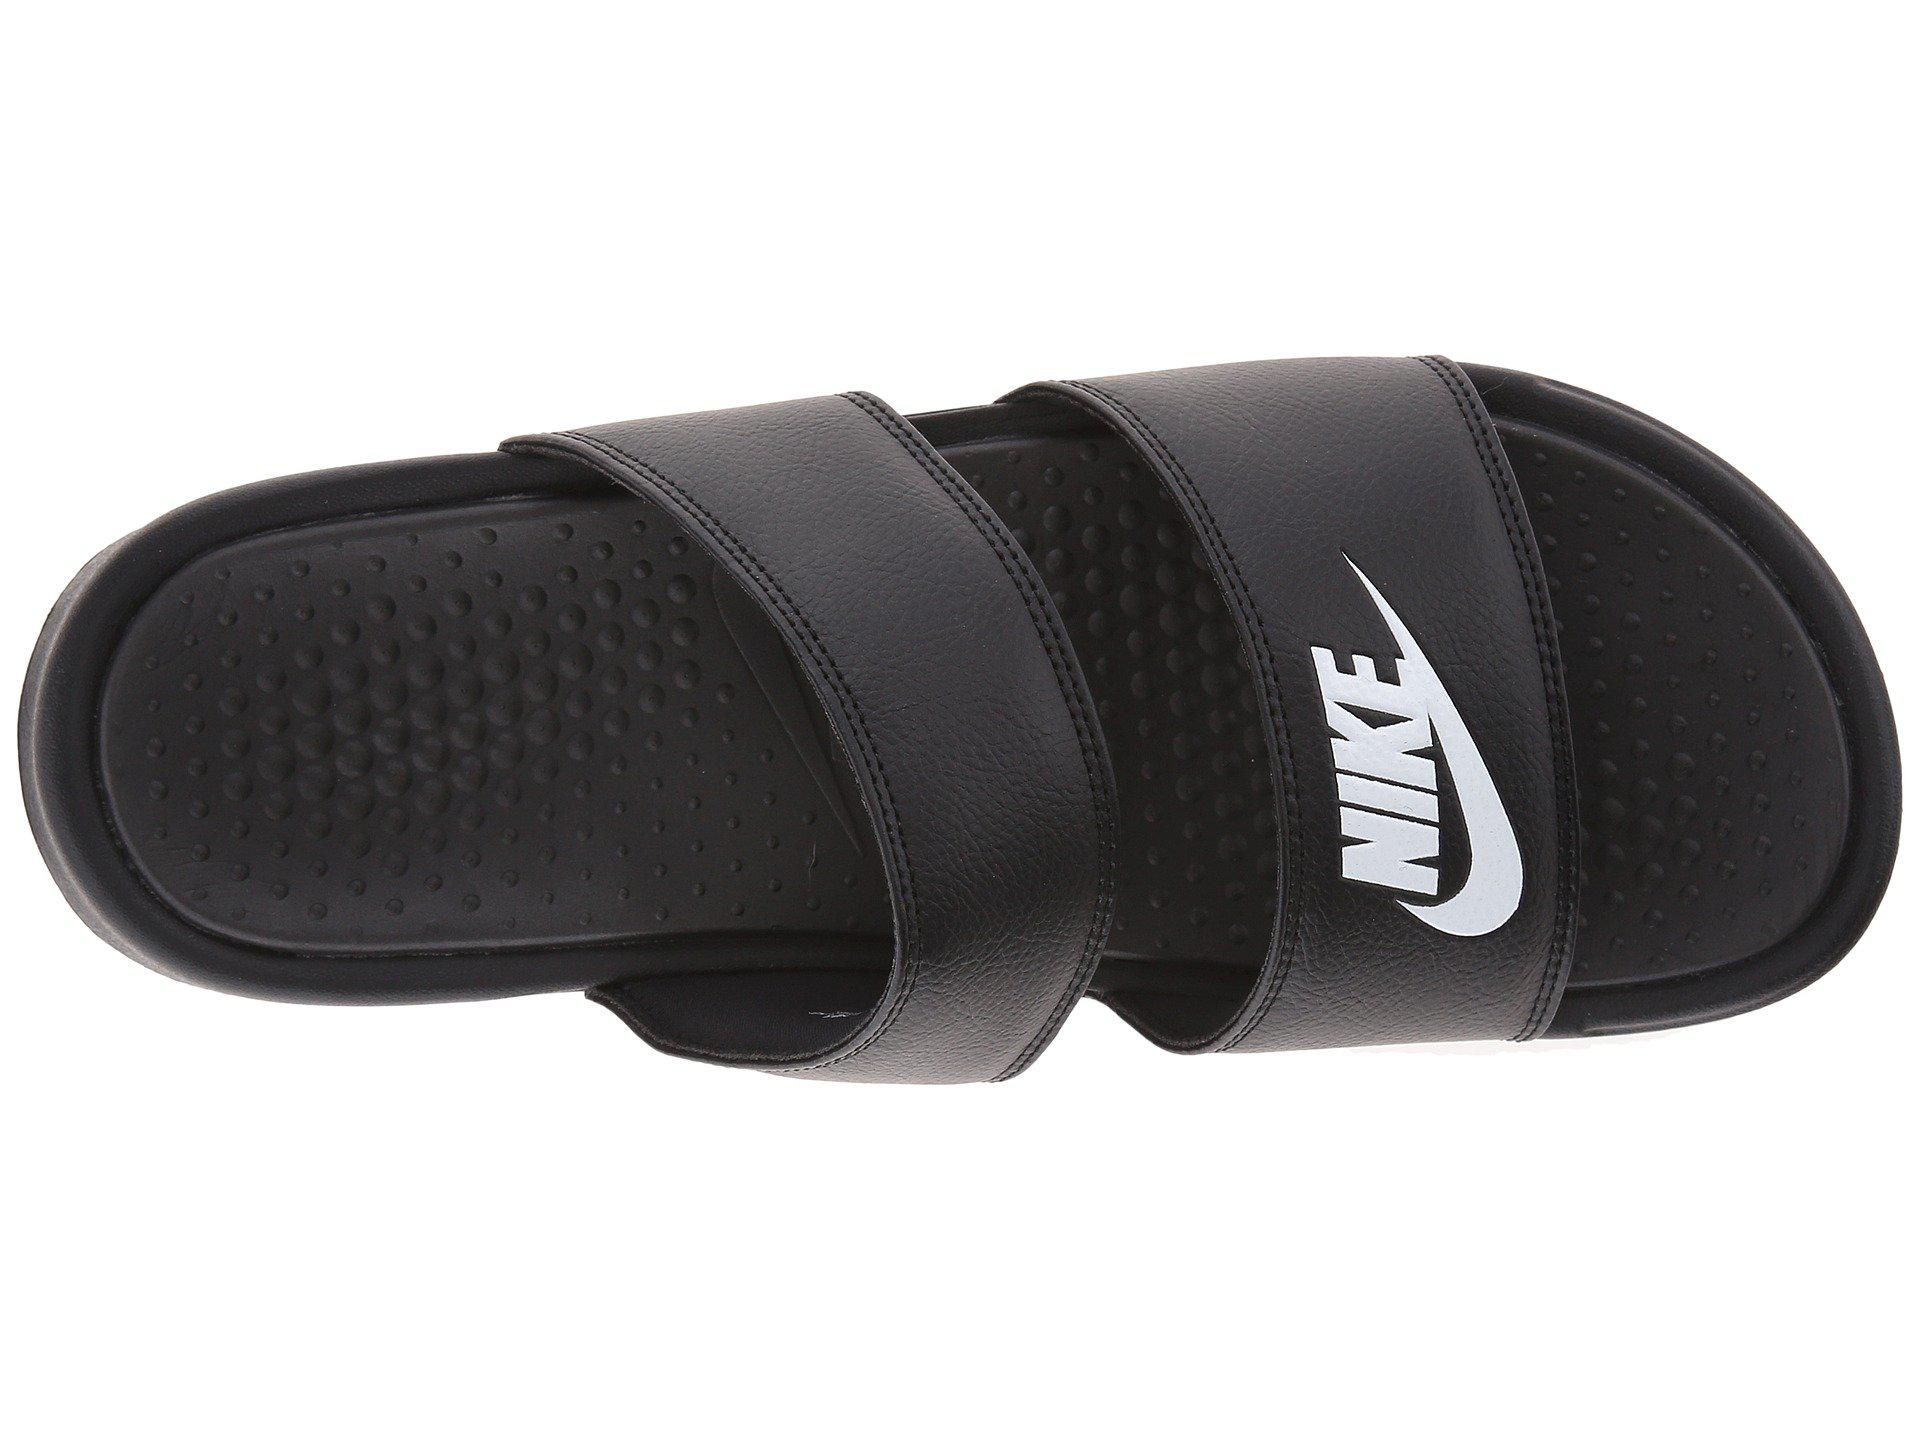 3165e4a1e33 Nike - Benassi Duo Ultra Slide (black white) Women s Slide Shoes - Lyst.  View fullscreen